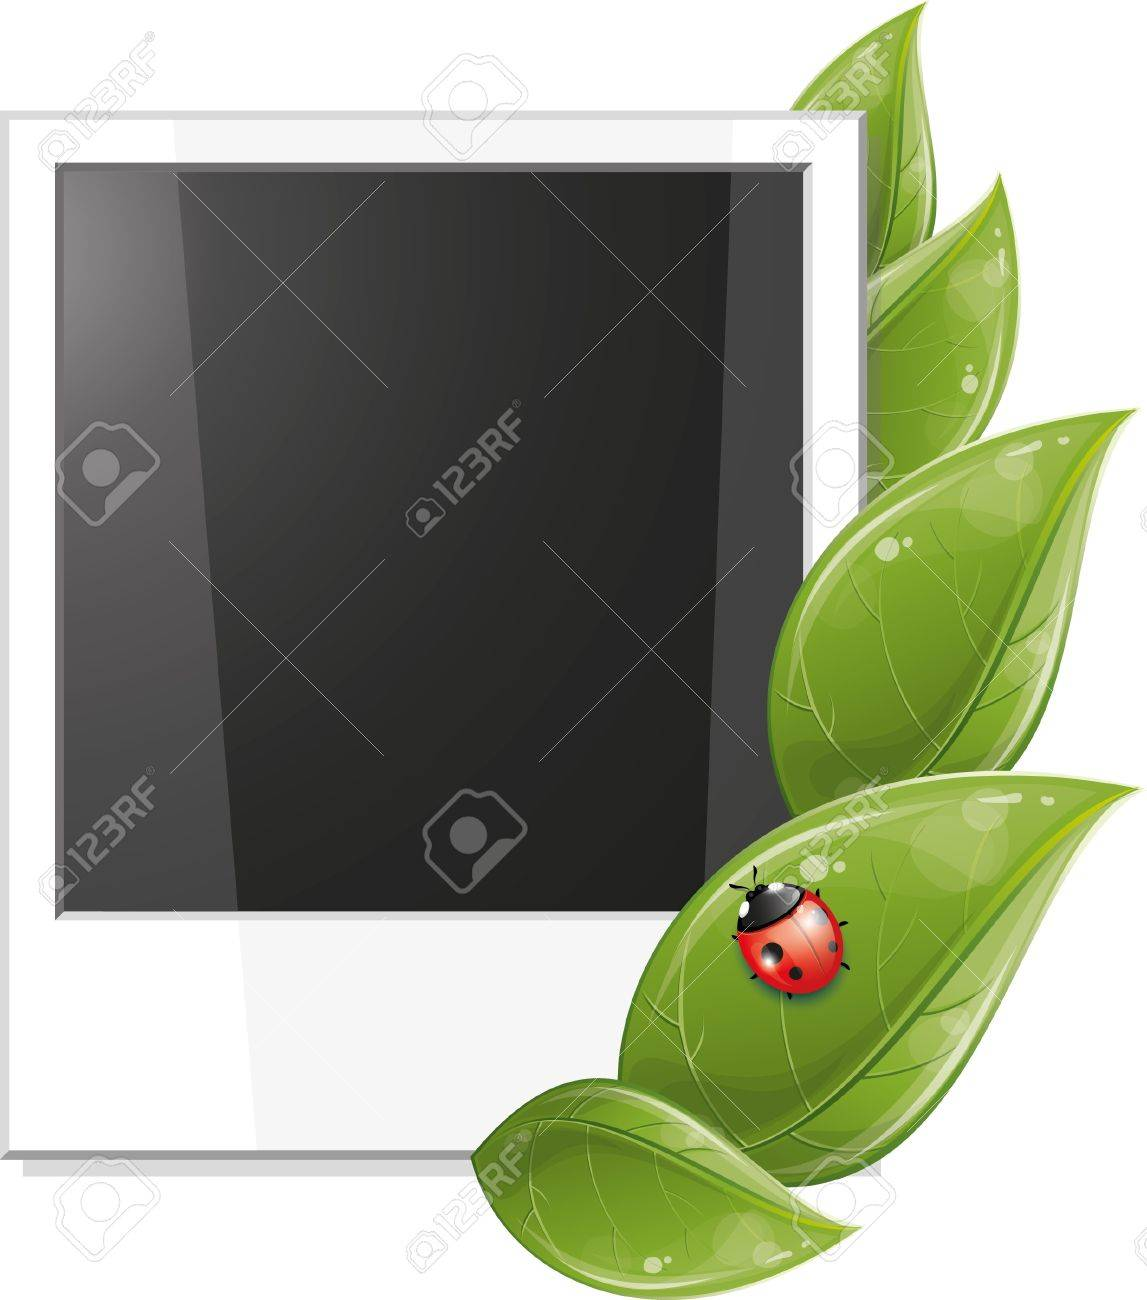 Blank photo frame with green leaves and ladybug, vector illustration, eps-10 Stock Vector - 9362463